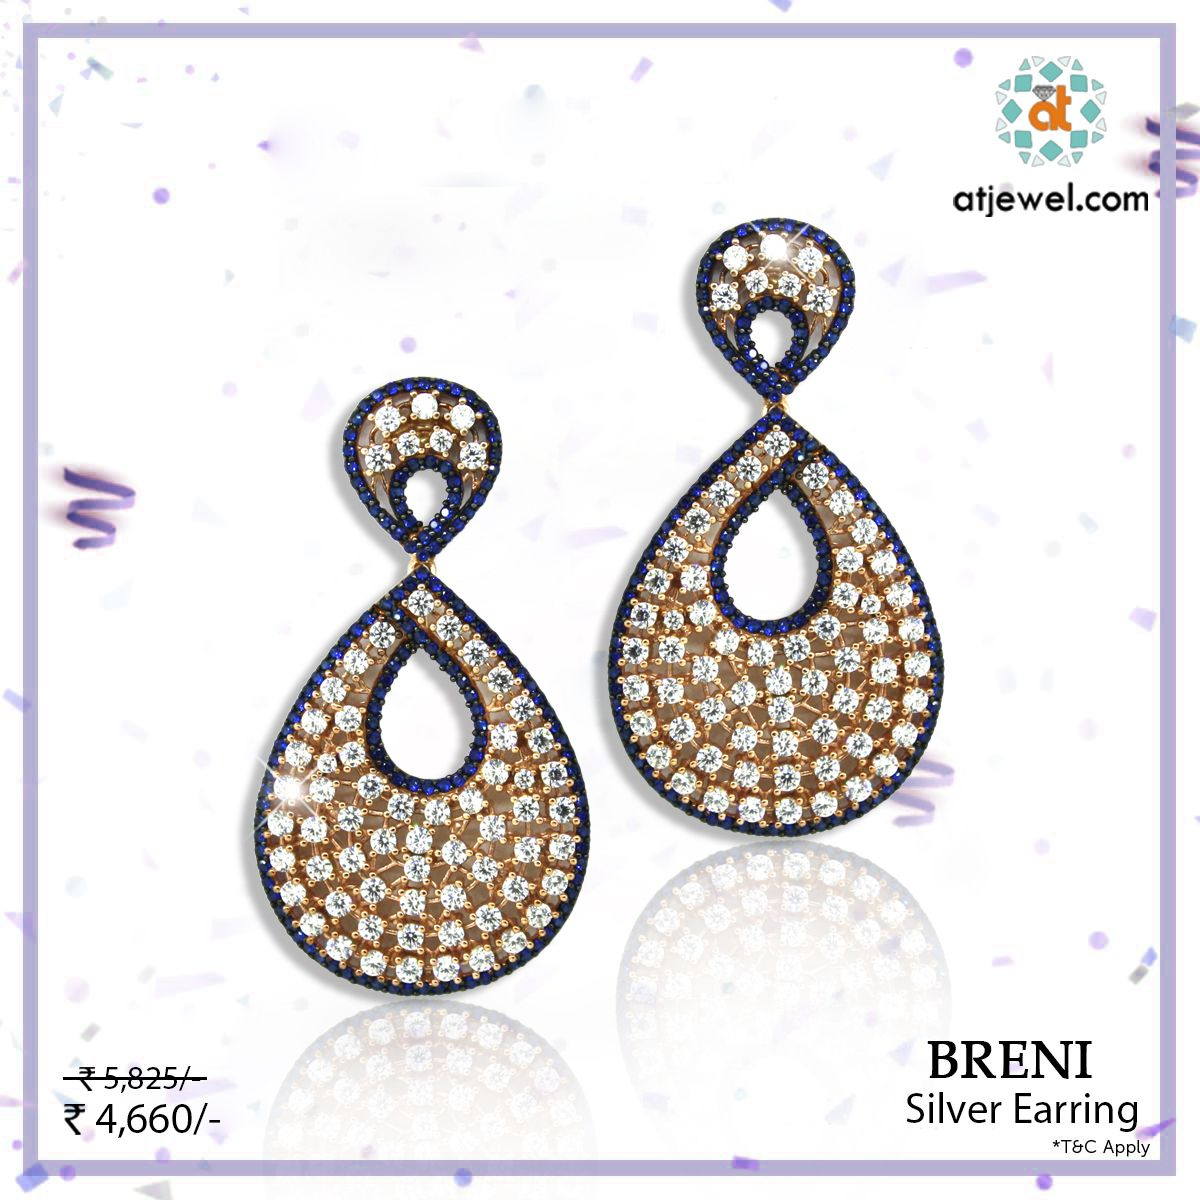 Design Of The Day..... ATJewel Presents a Beautiful Breni Silver Earrings at Best Prize.Shop Now #ATJewel #Silver #Gold #SilverJewellery #ValentinSpecial #BestOffer http://bit.ly/2kufDRZ